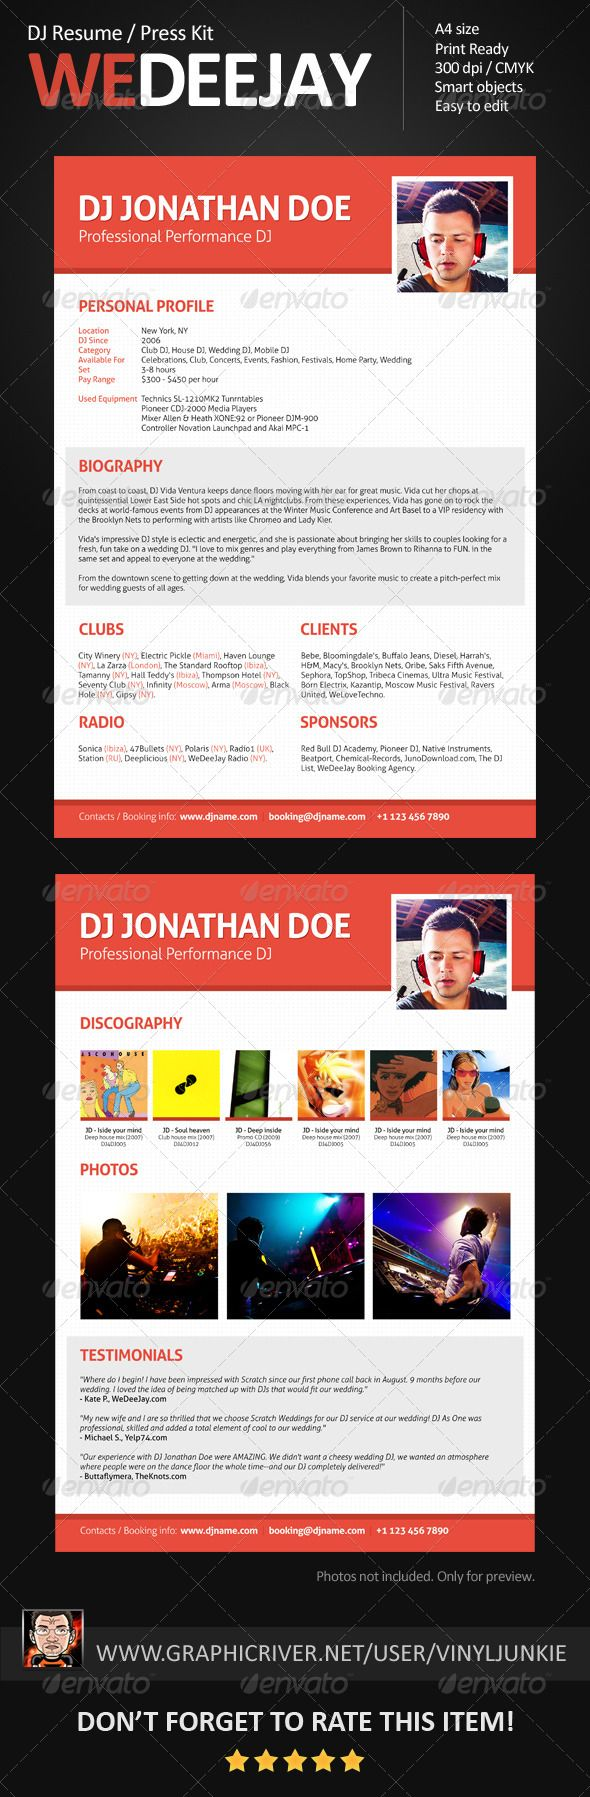 15 best images about DJ Press Kit and DJ Resume Templates on – Press Kit Template